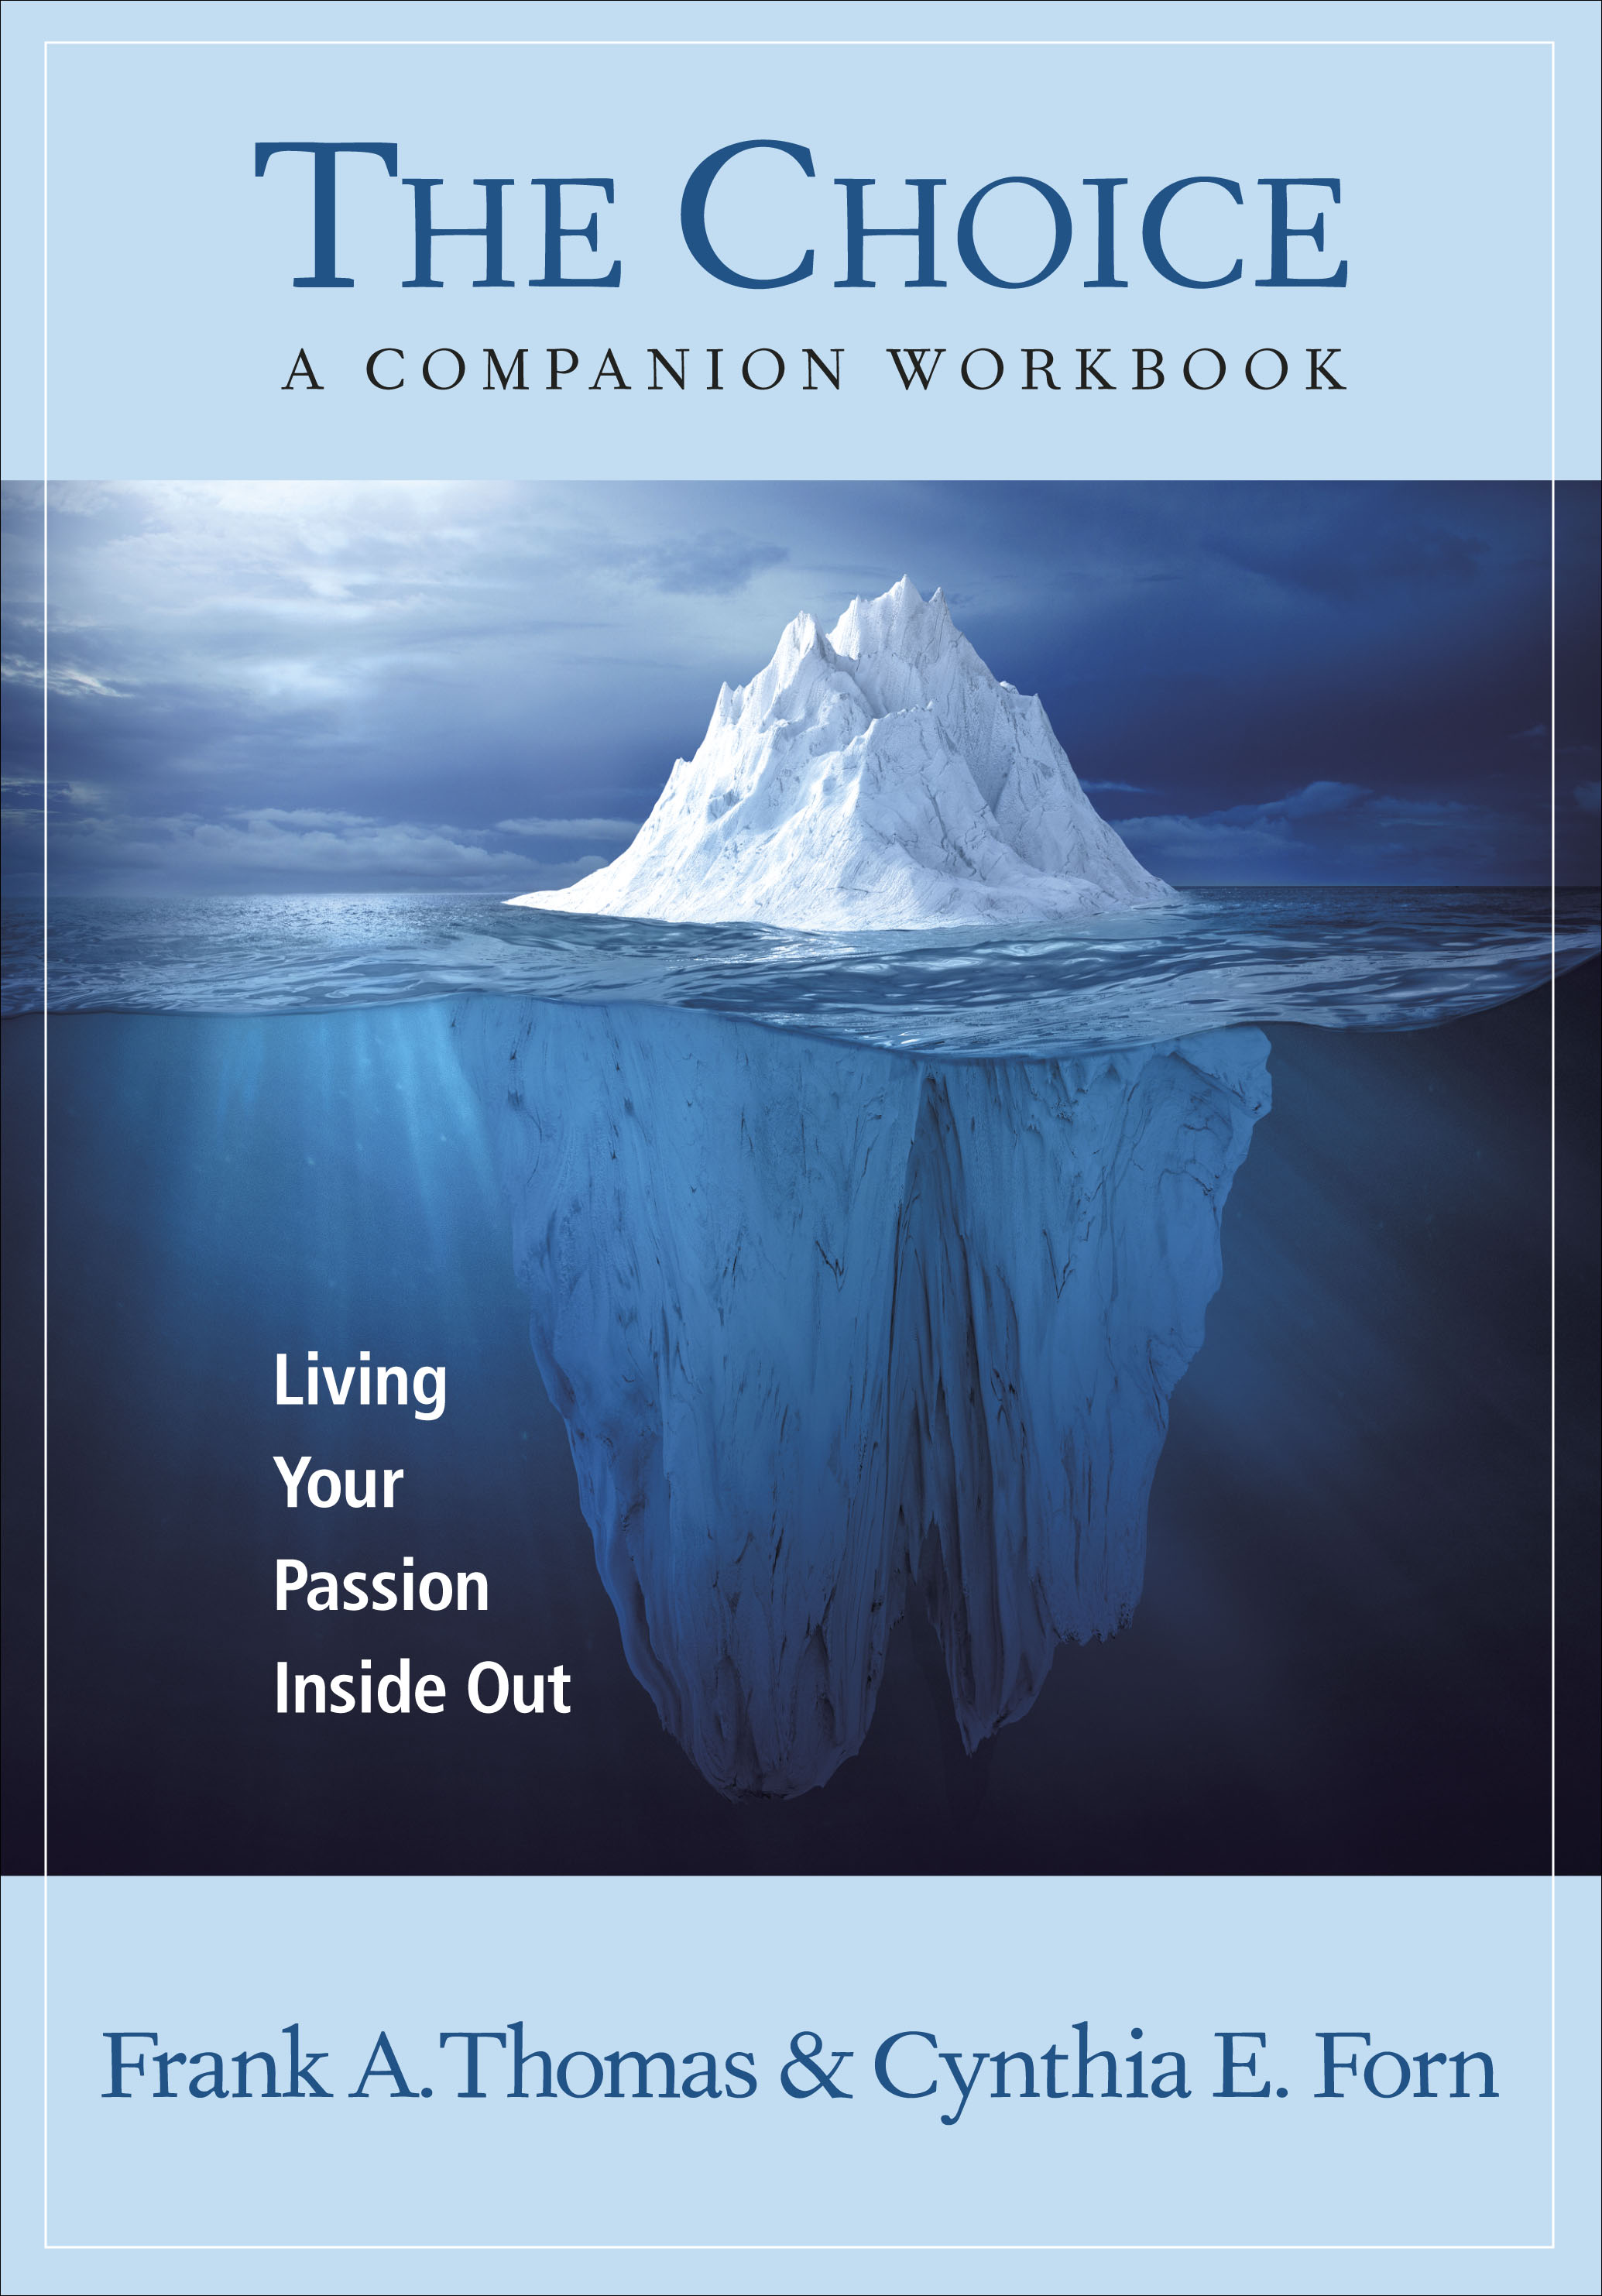 The Choice: A Companion Workbook